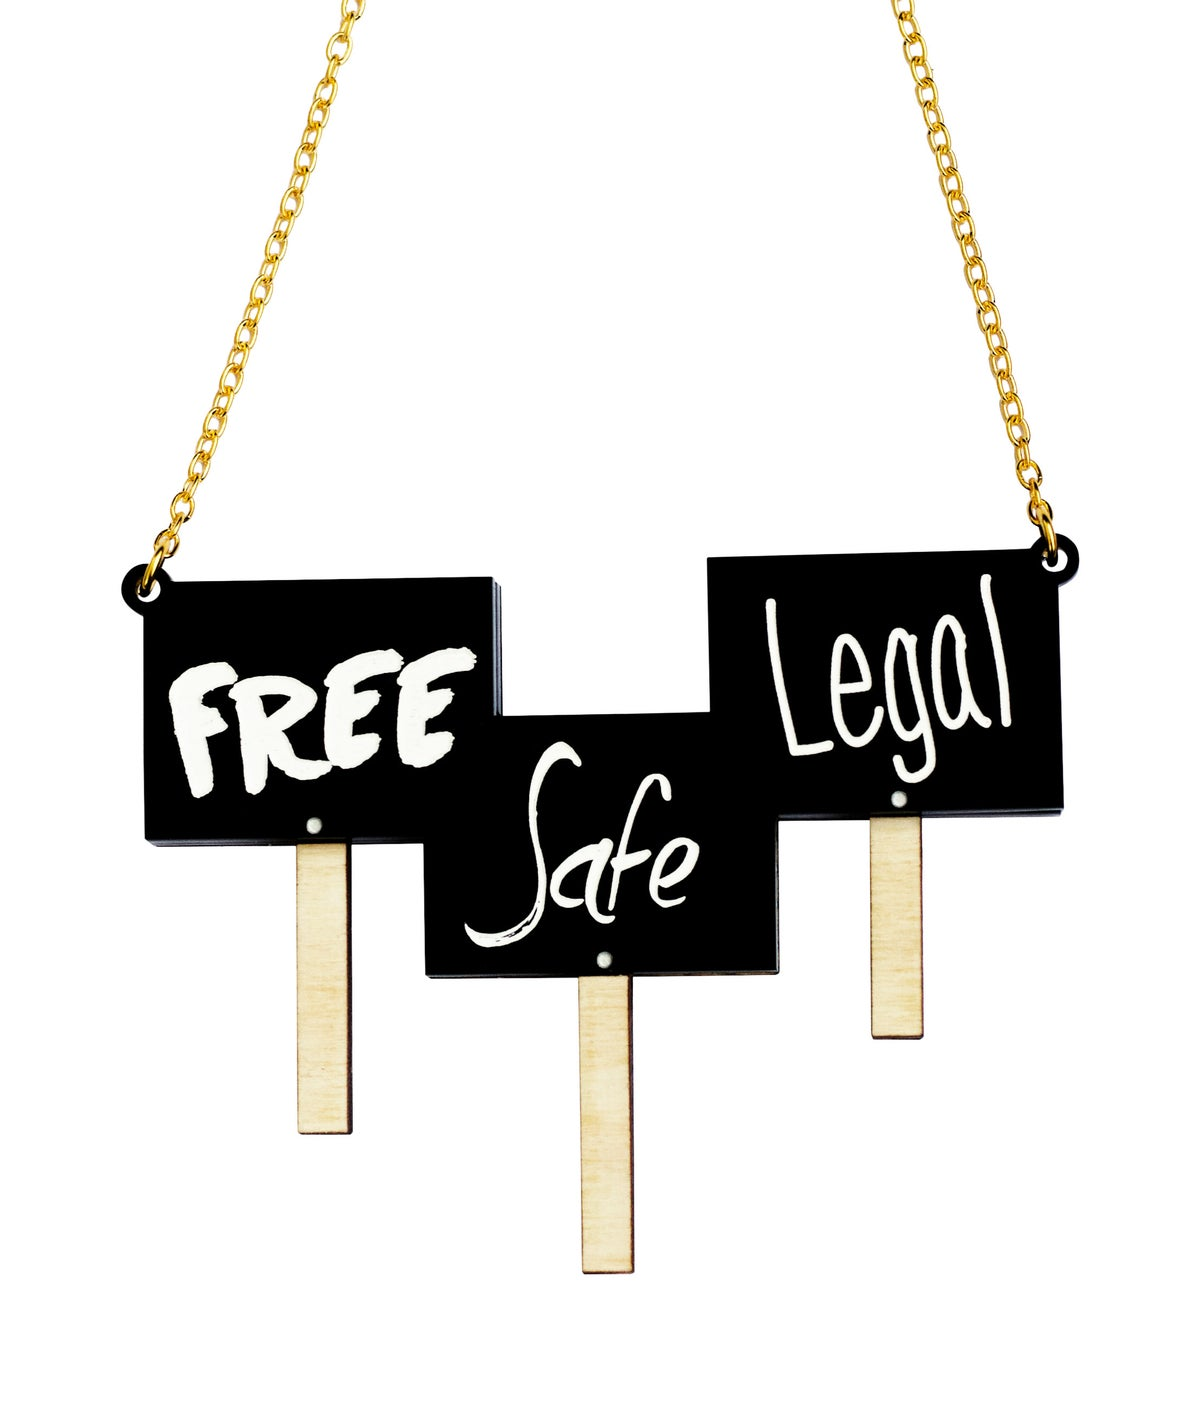 Image of Free Safe Legal Necklace Black